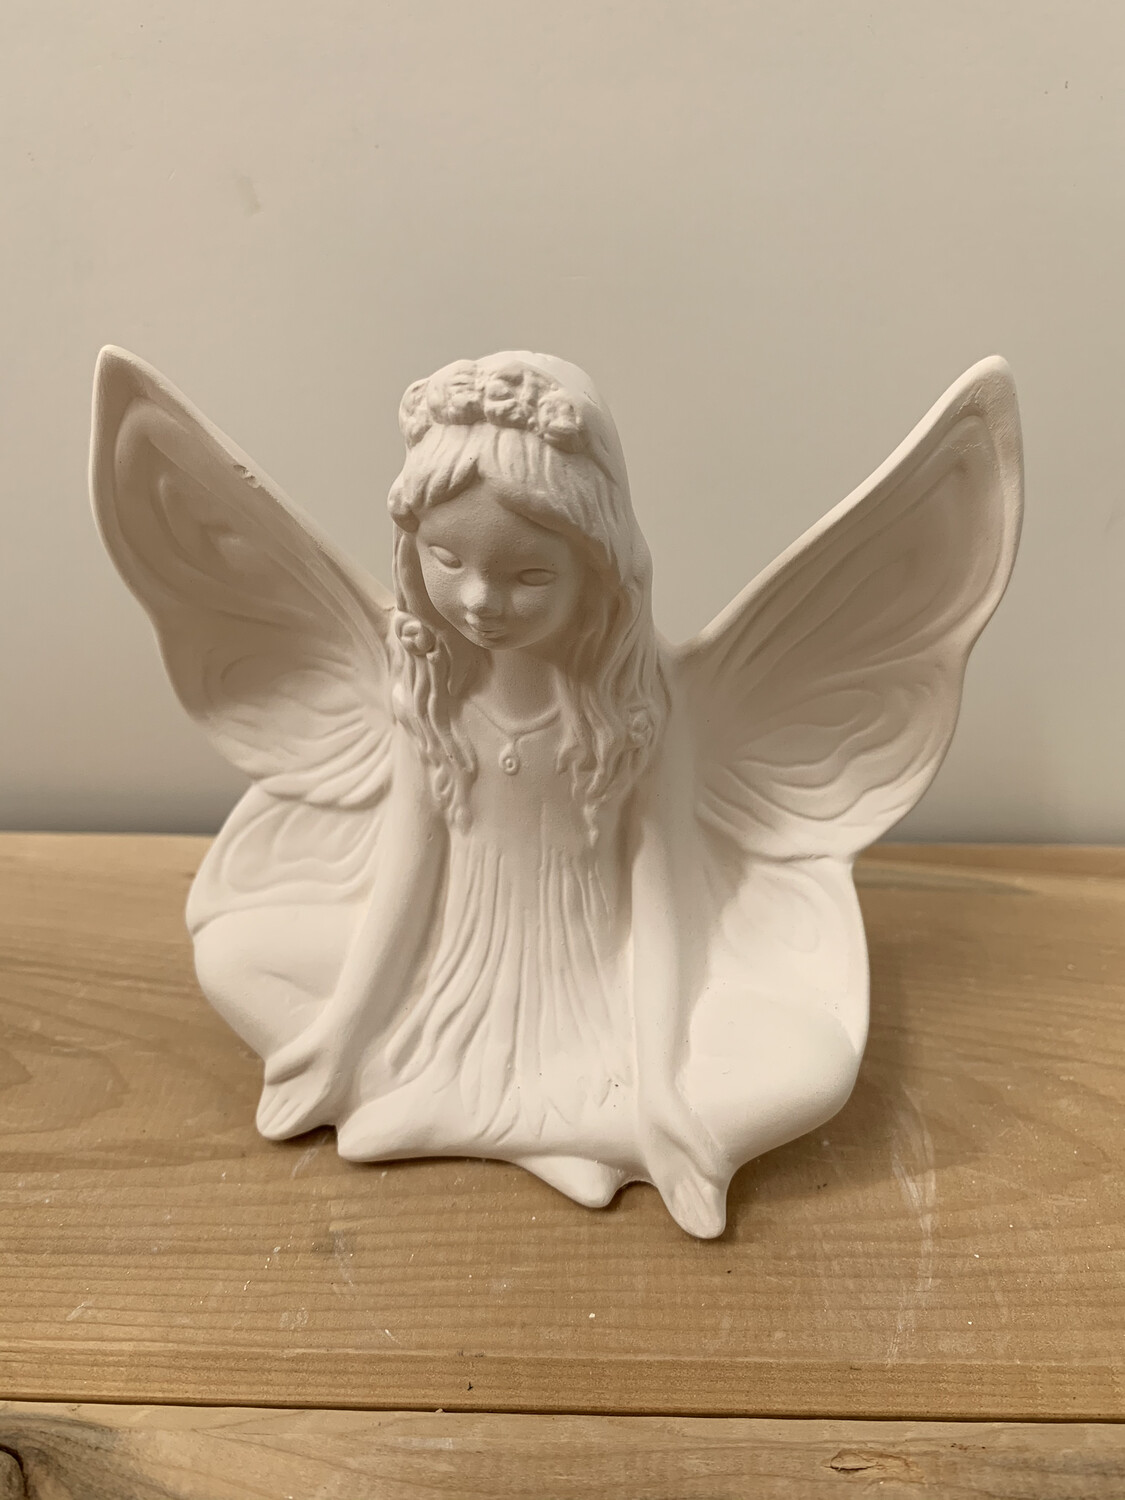 NO FIRE Paint Your Own Pottery Kit -  Ceramic Small Lotus Fairy Figurine Acrylic Painting Kit